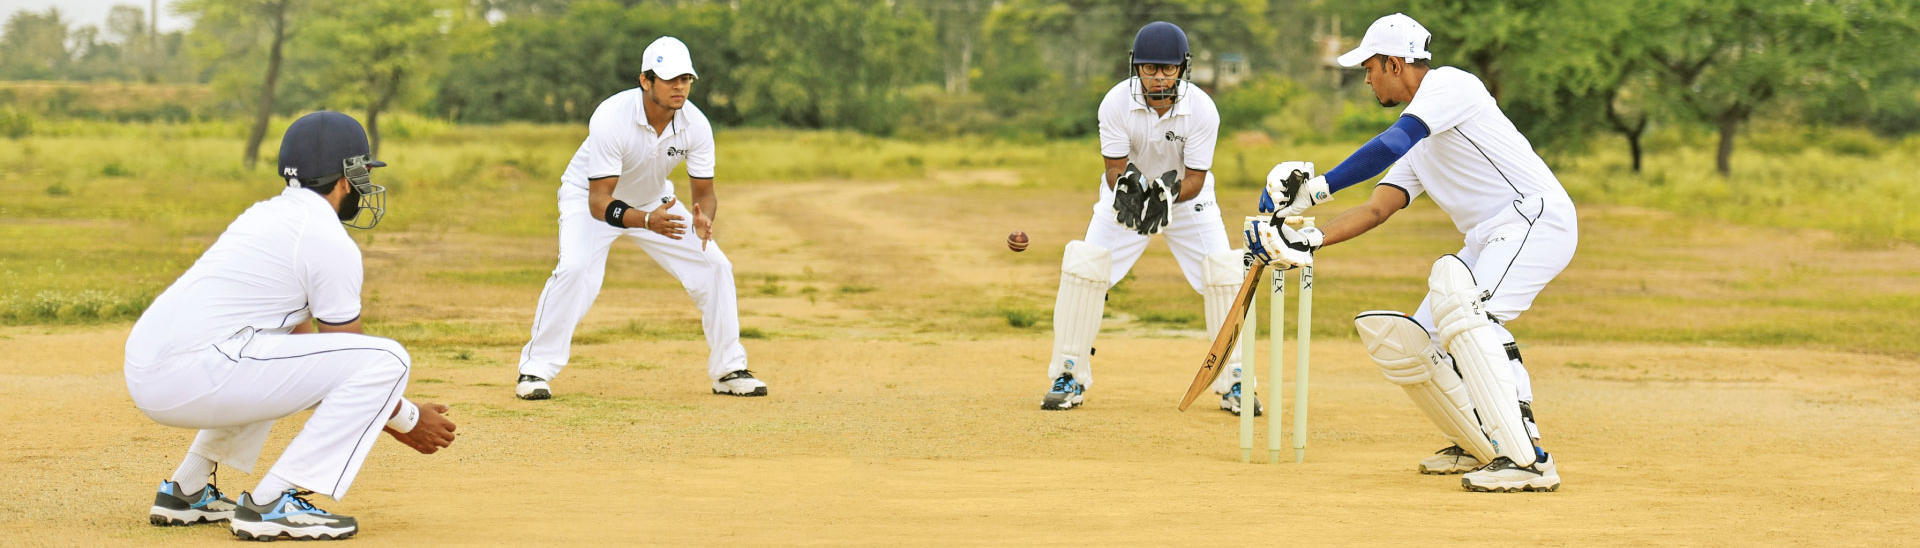 Wicketkeeping In Cricket